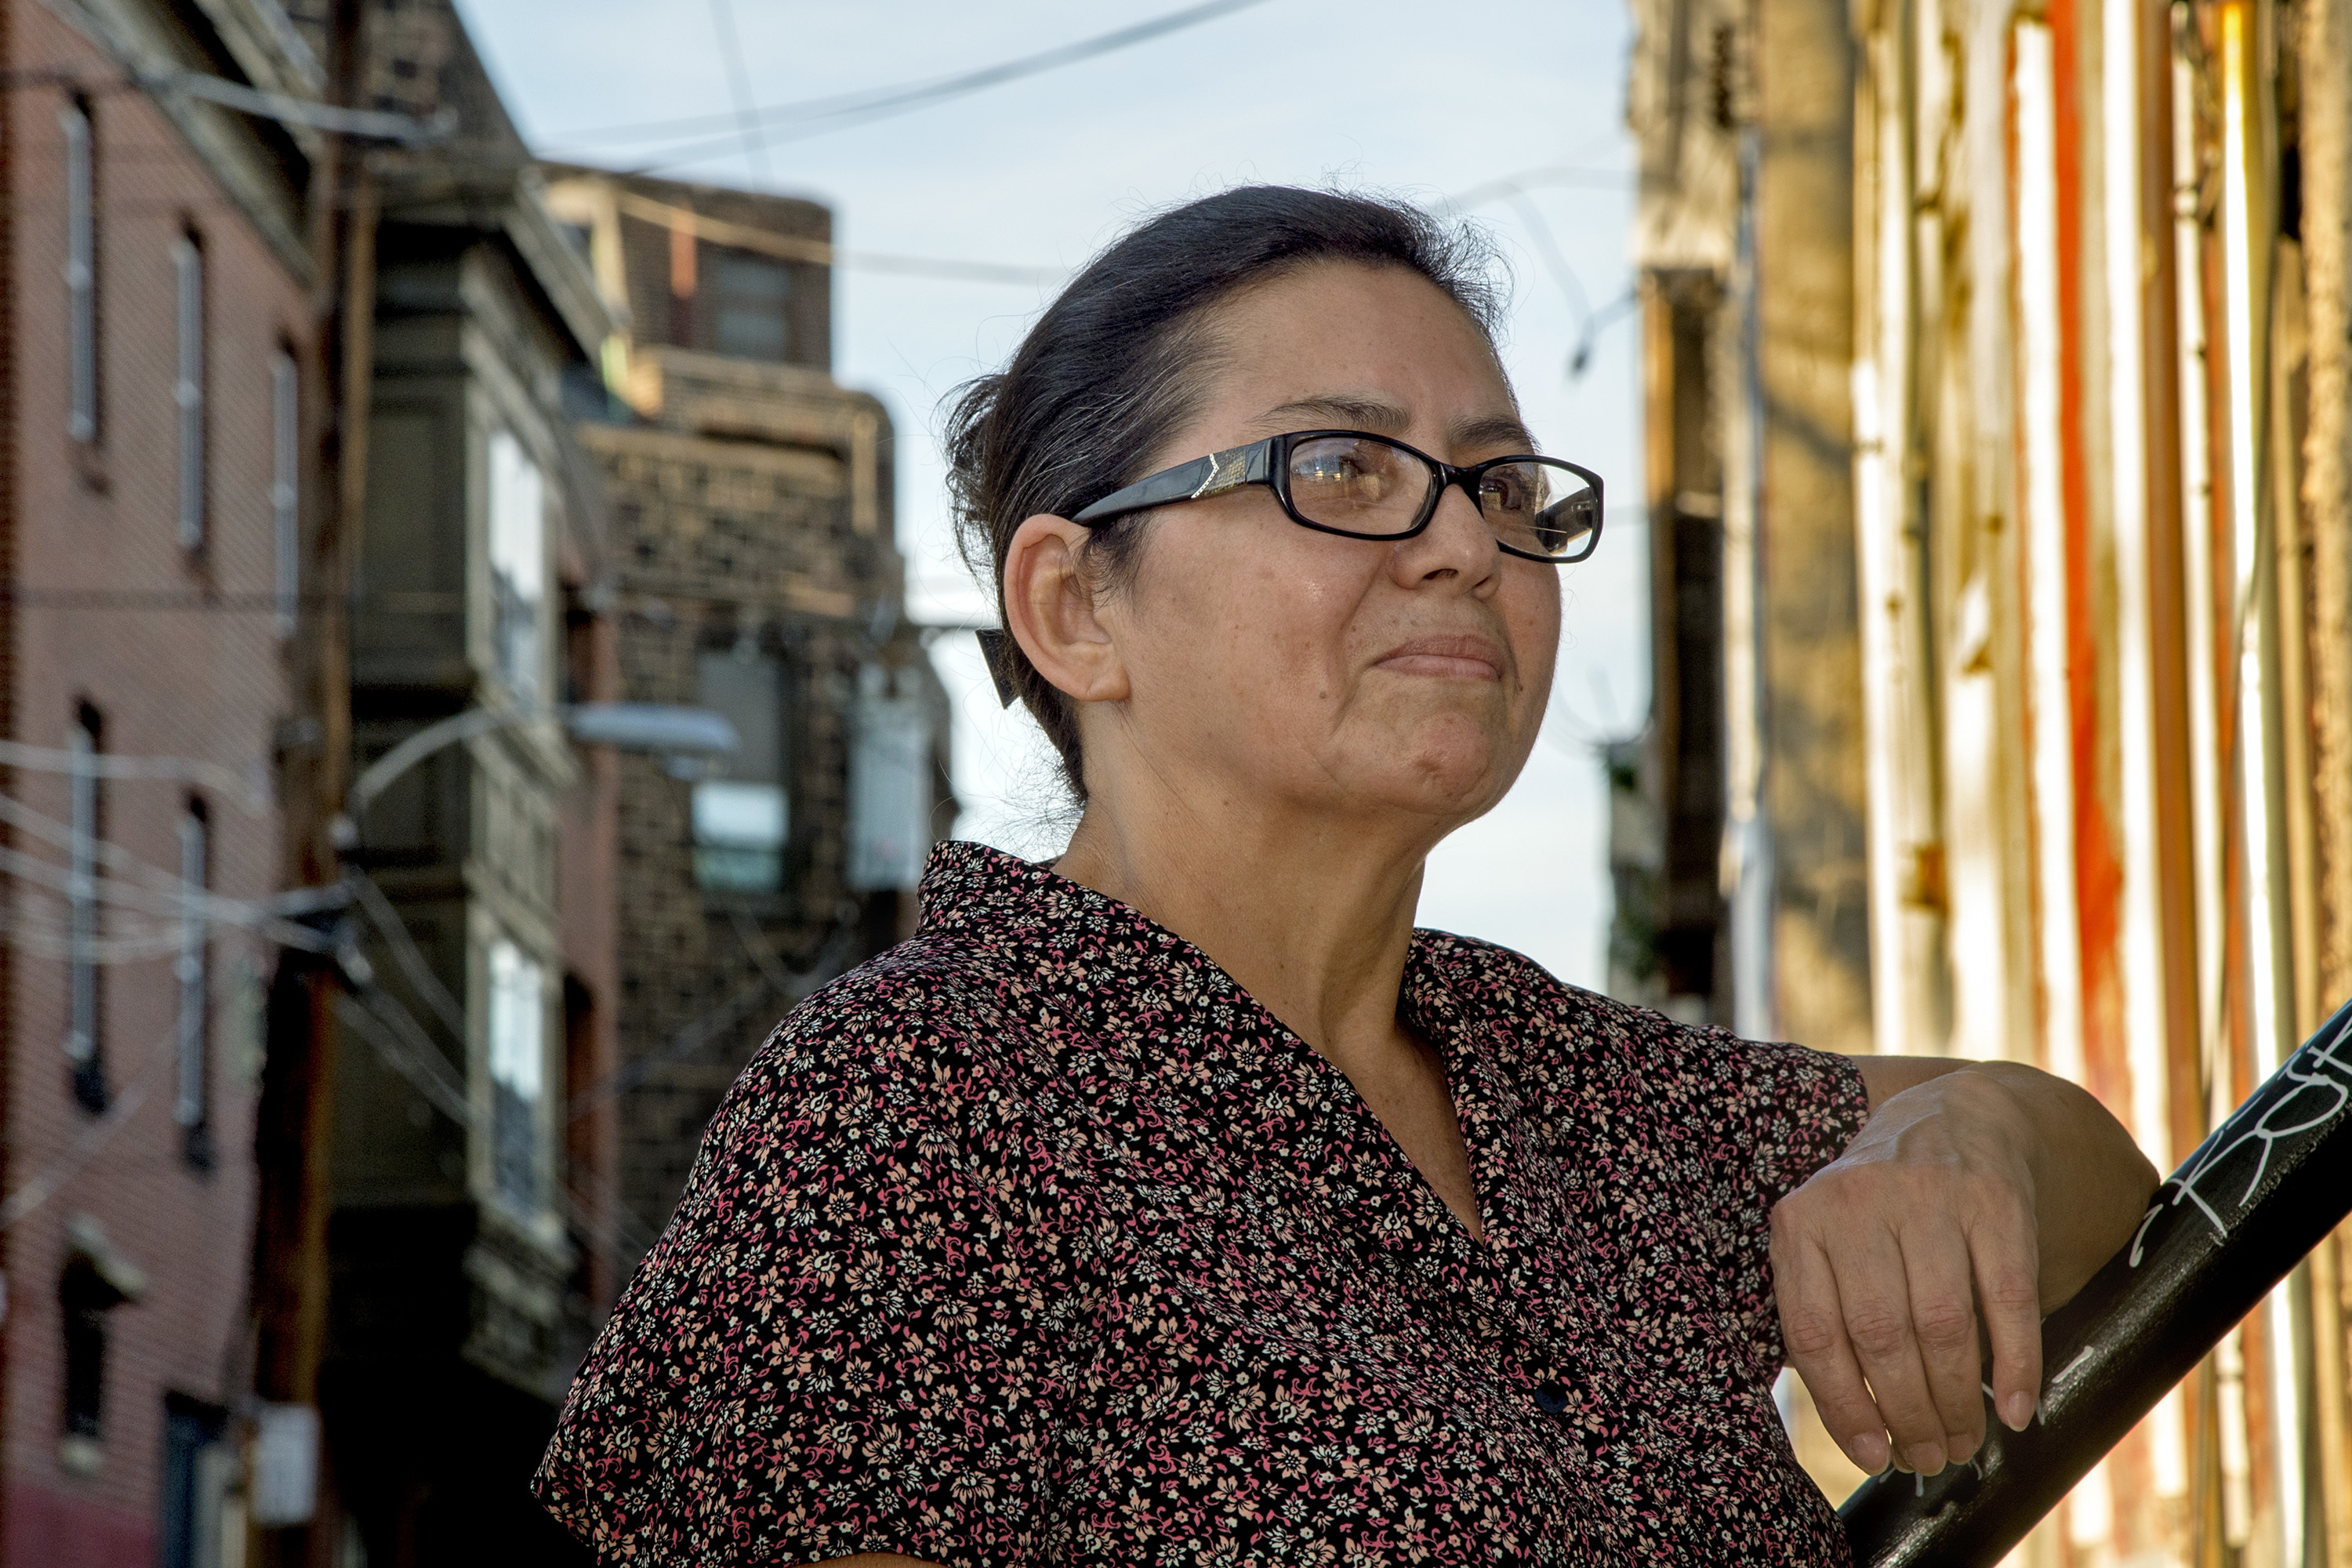 Miriam Turcios, originally from Honduras, pauses outside the Kensington offices of New Sanctuary Movement of Philadelphia. The Trump administration revoked the Temporary Protected Status that allows Turcios and others to live and work here legally.